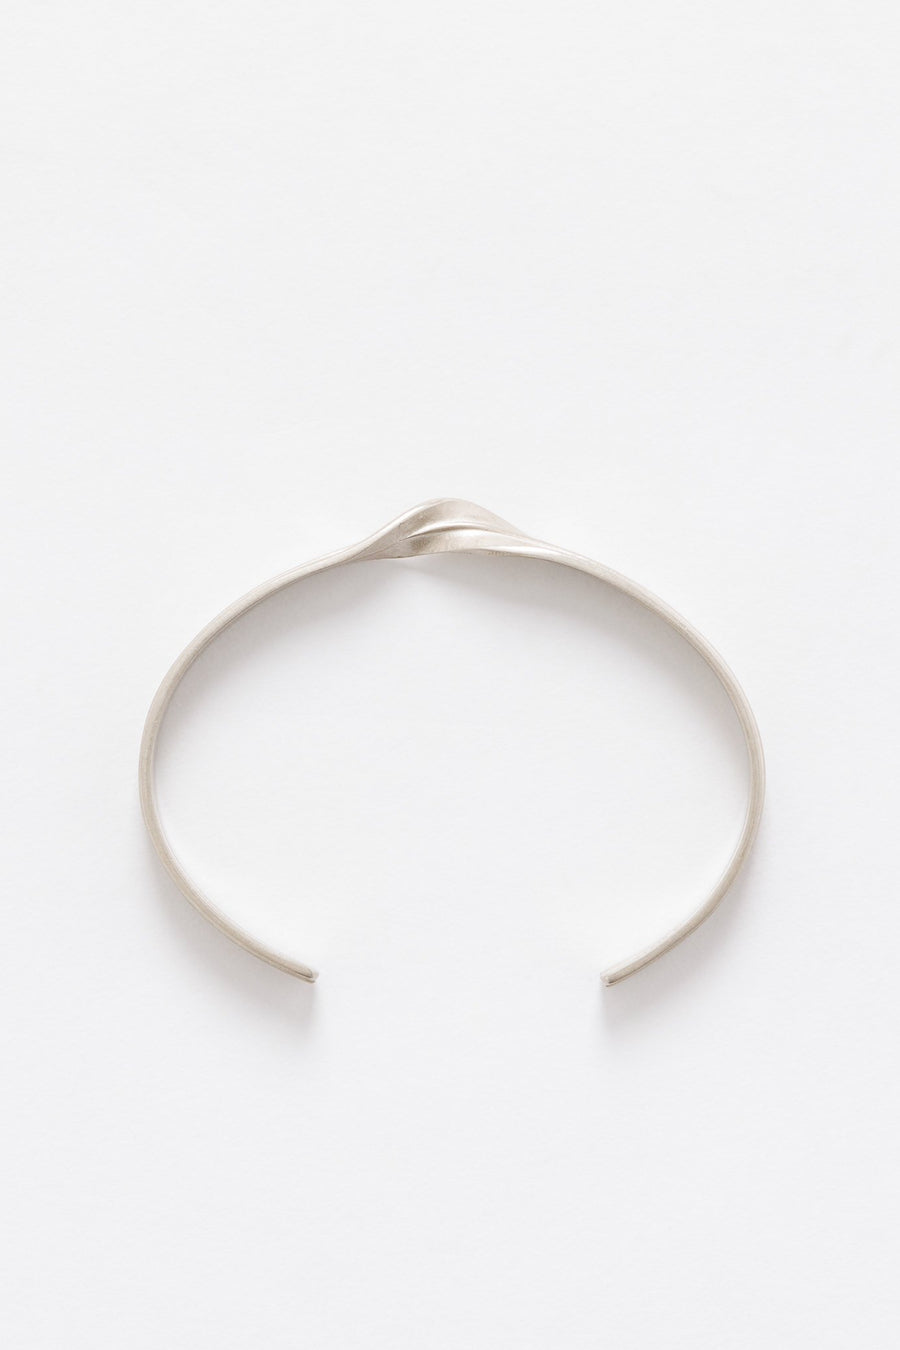 Maison Margiela Twisted Bracelet in Silver - Notre